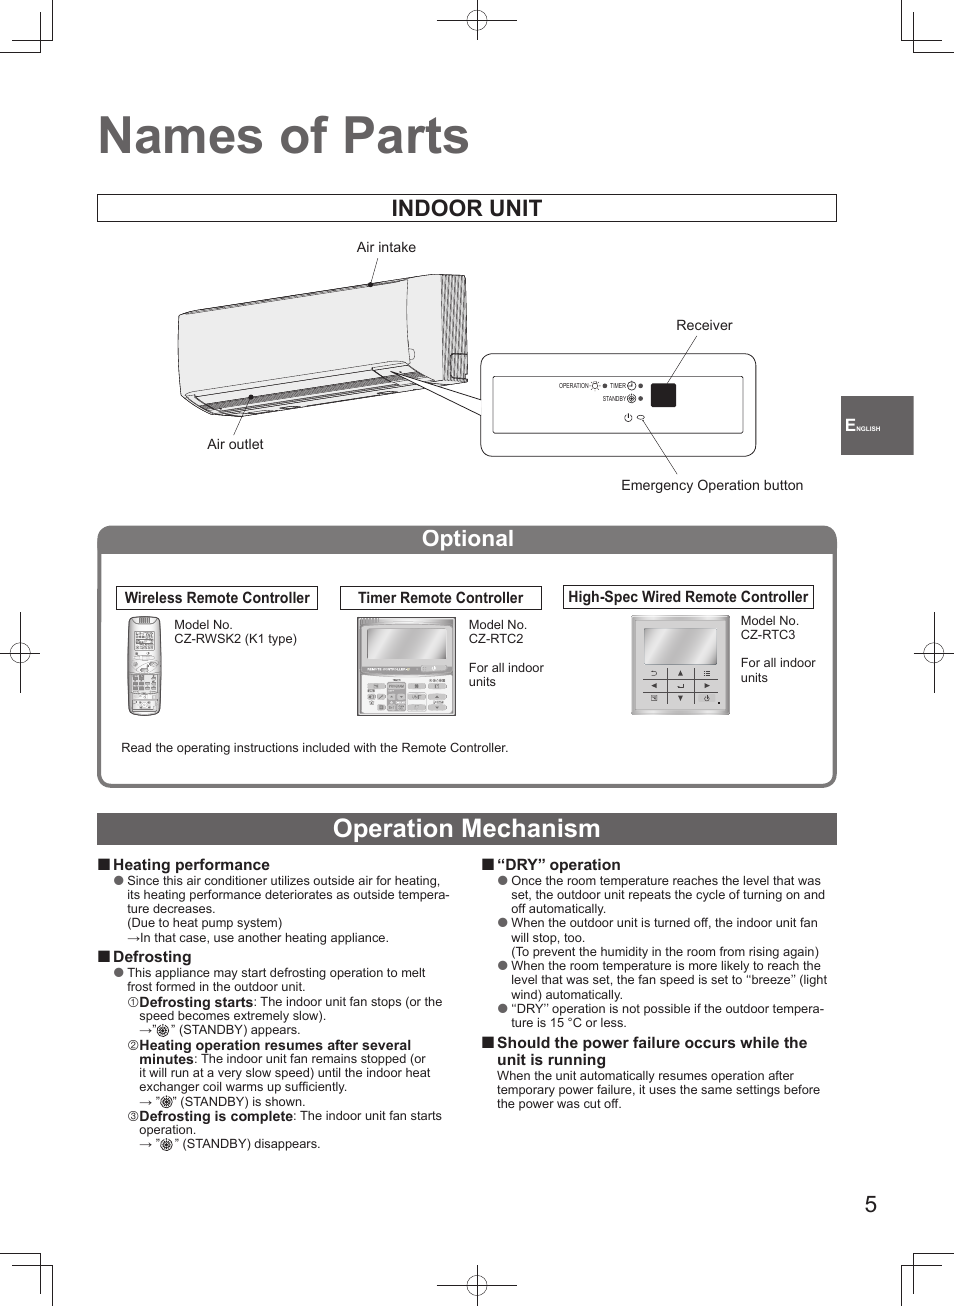 Names of parts, Operation mechanism, Indoor unit | Panasonic S45MK1E5A User  Manual | Page 5 / 102